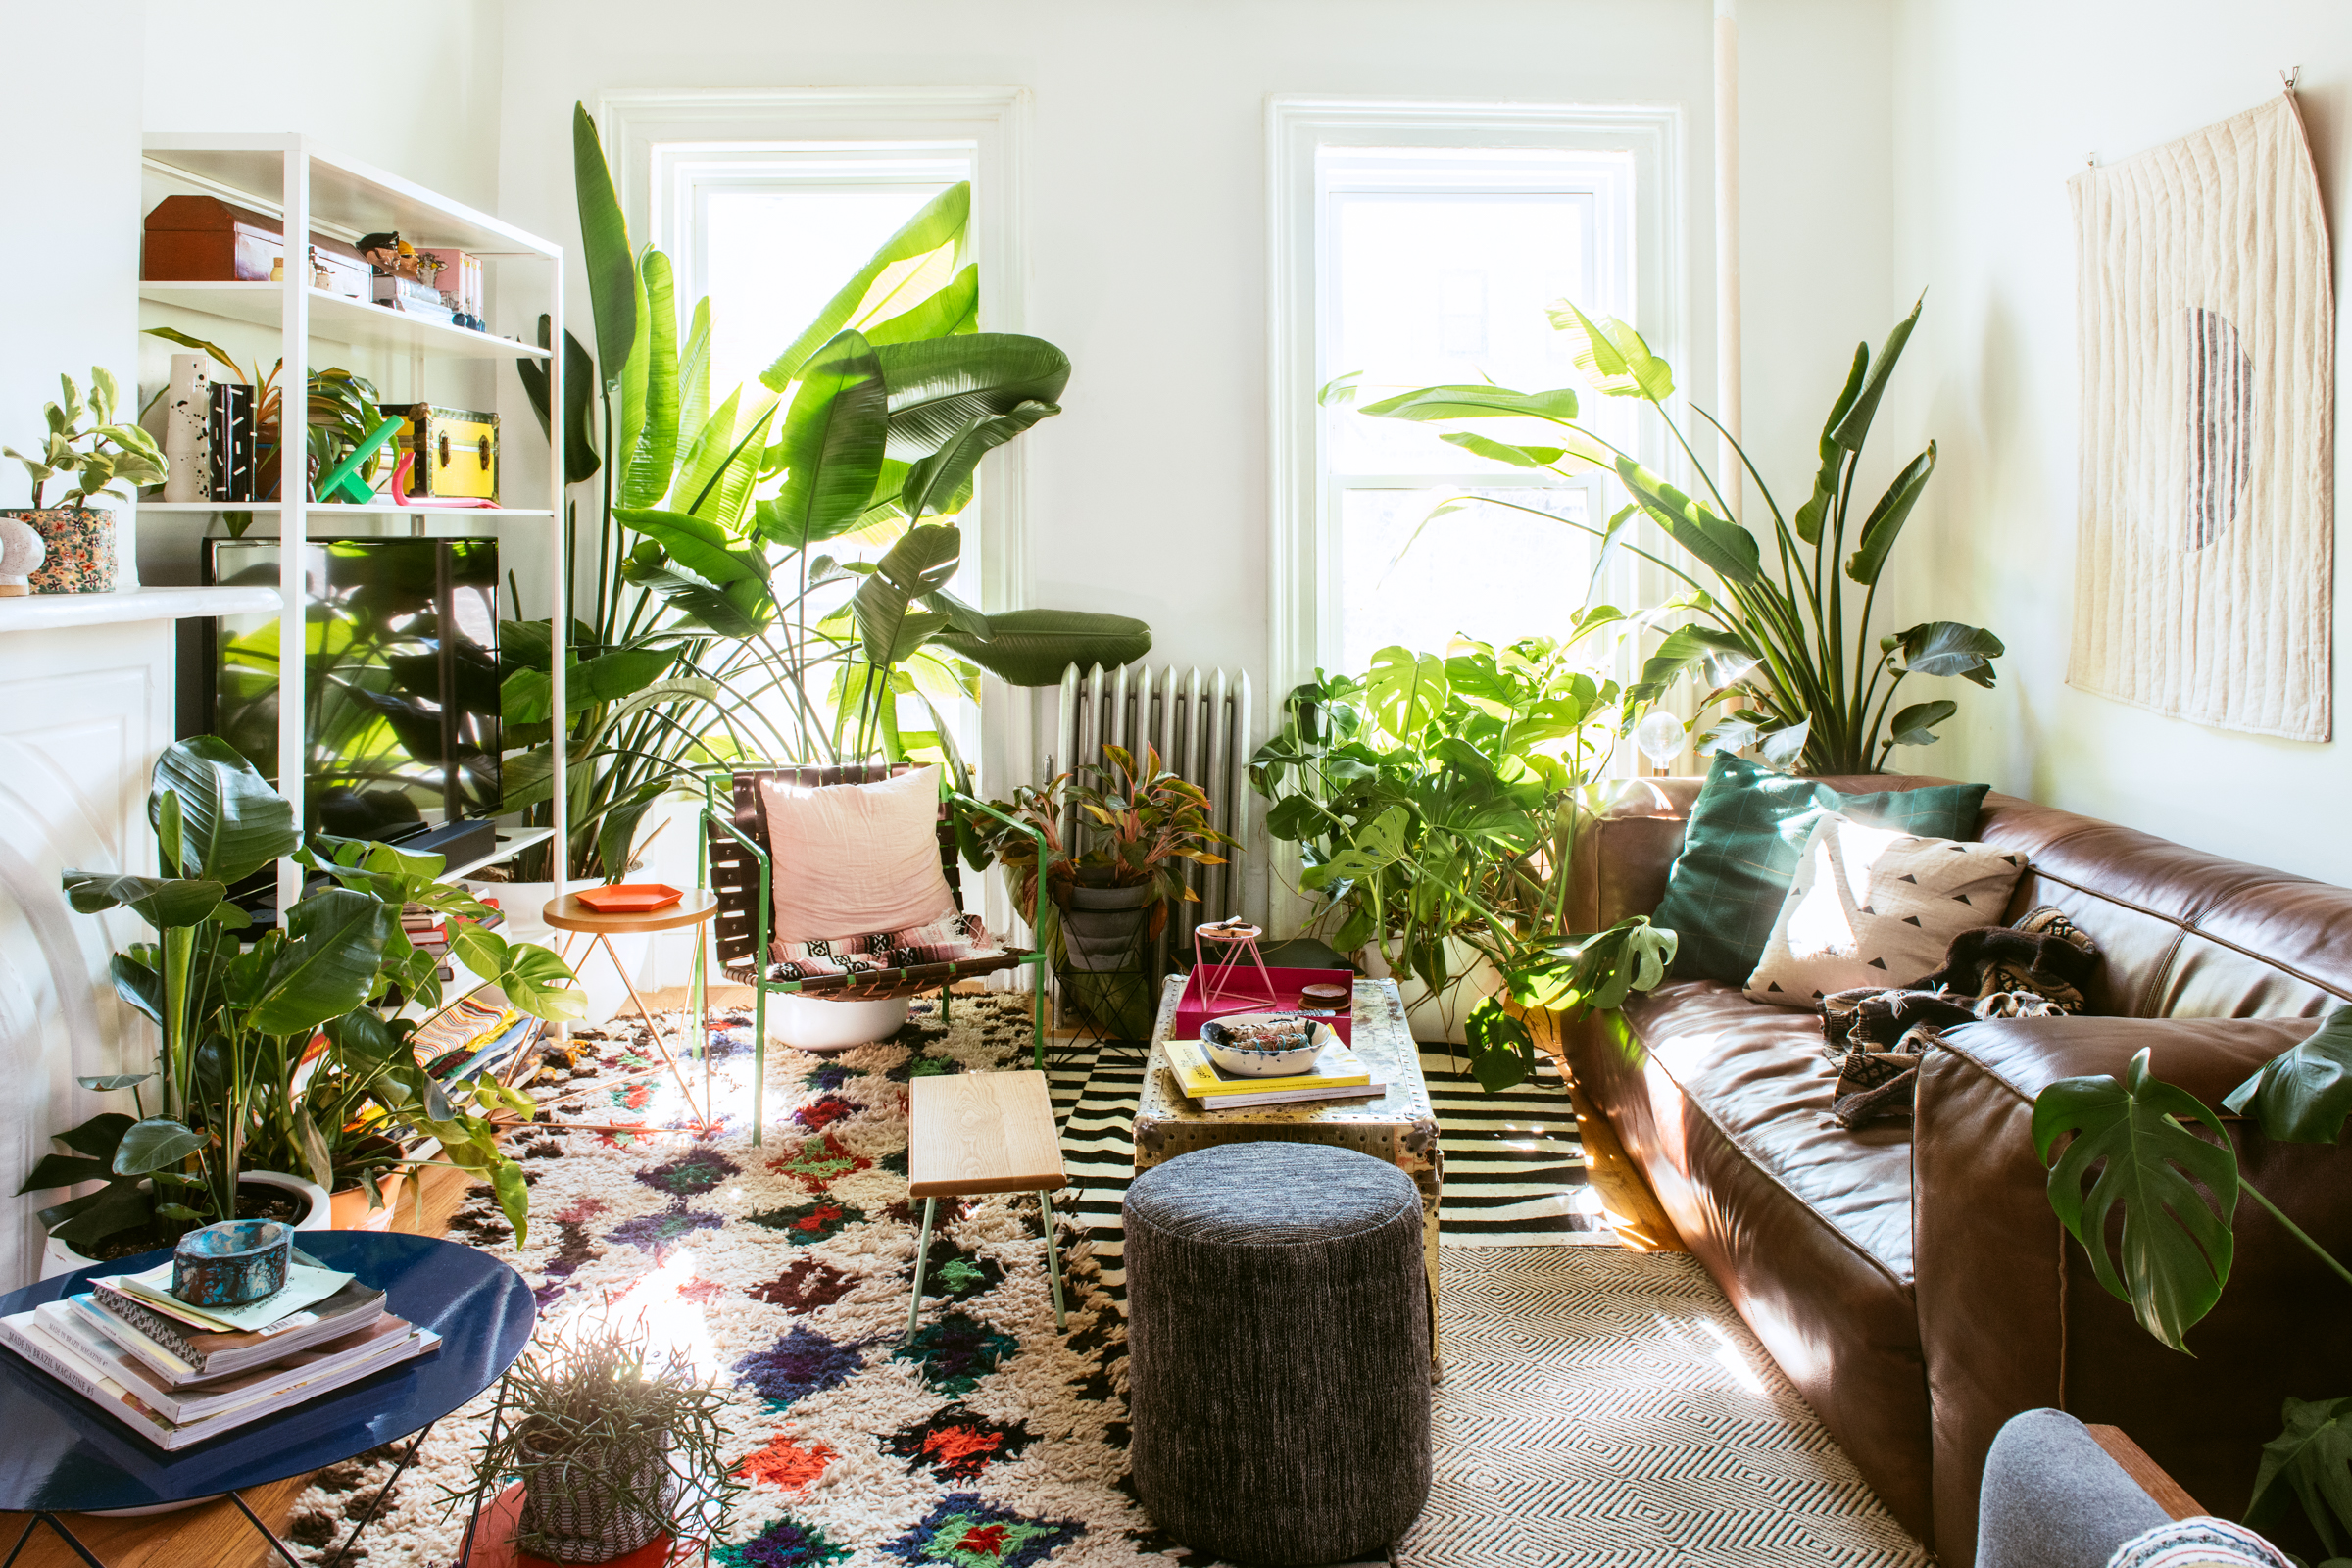 Living room with two windows, brown sofa, patterned carpet, and lots of plants.